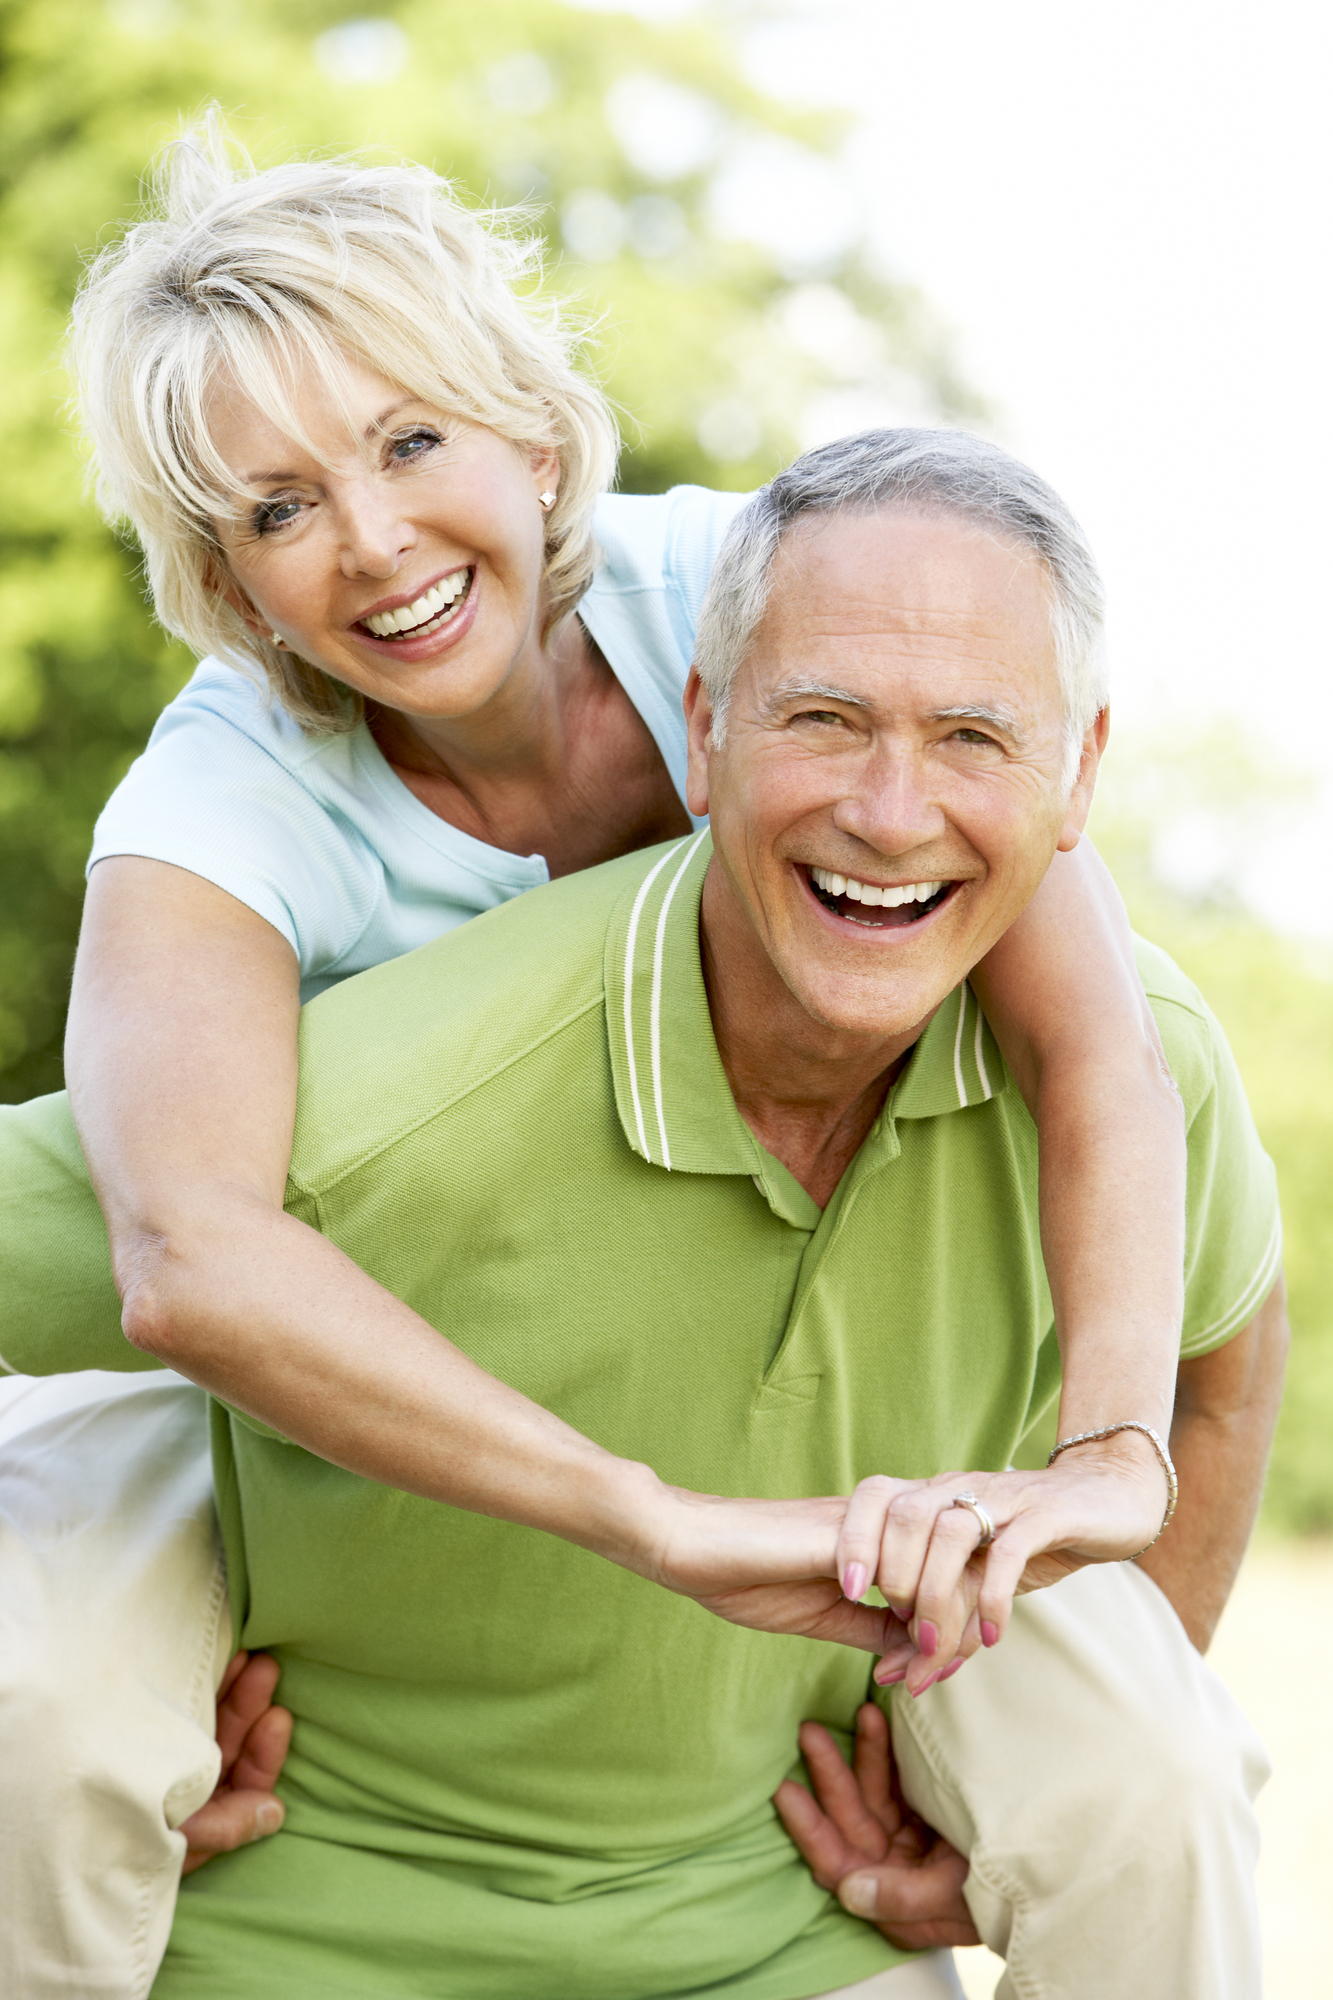 Happy older couple who have a happy active life helped by having custom dentures created for them at Boca Smile Center in Boca Raton, FL.